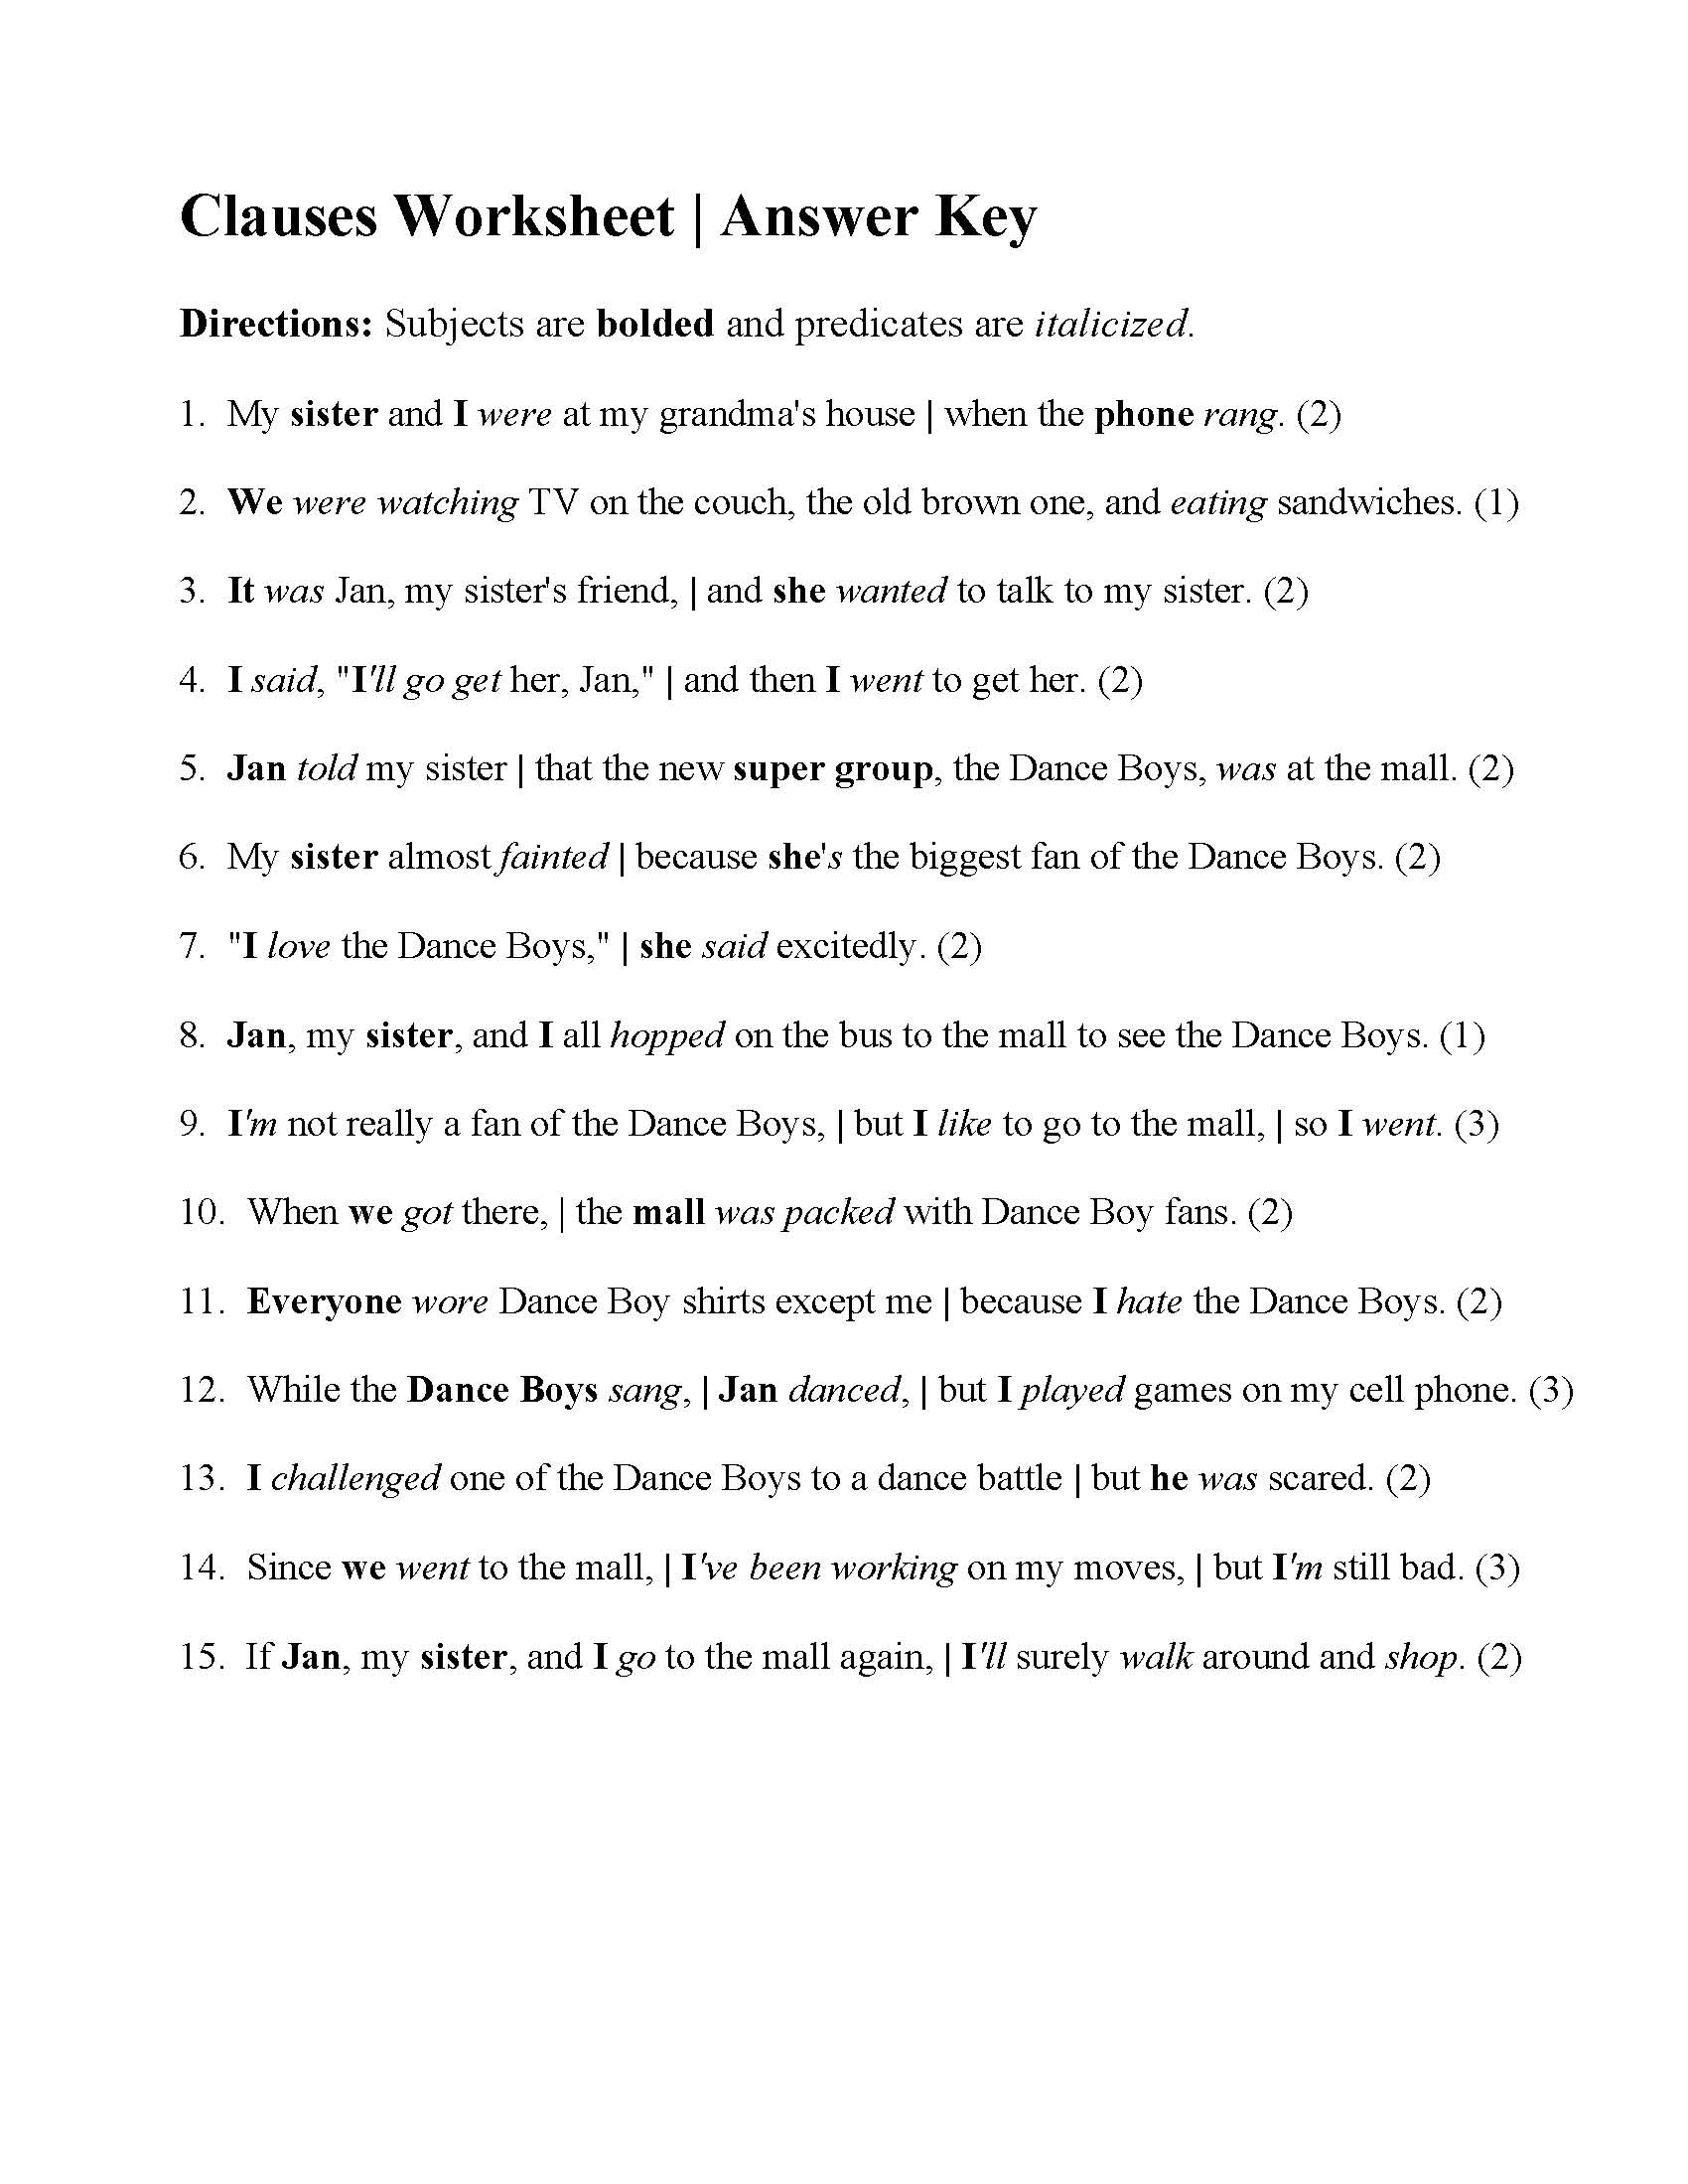 Clauses Worksheet Answers